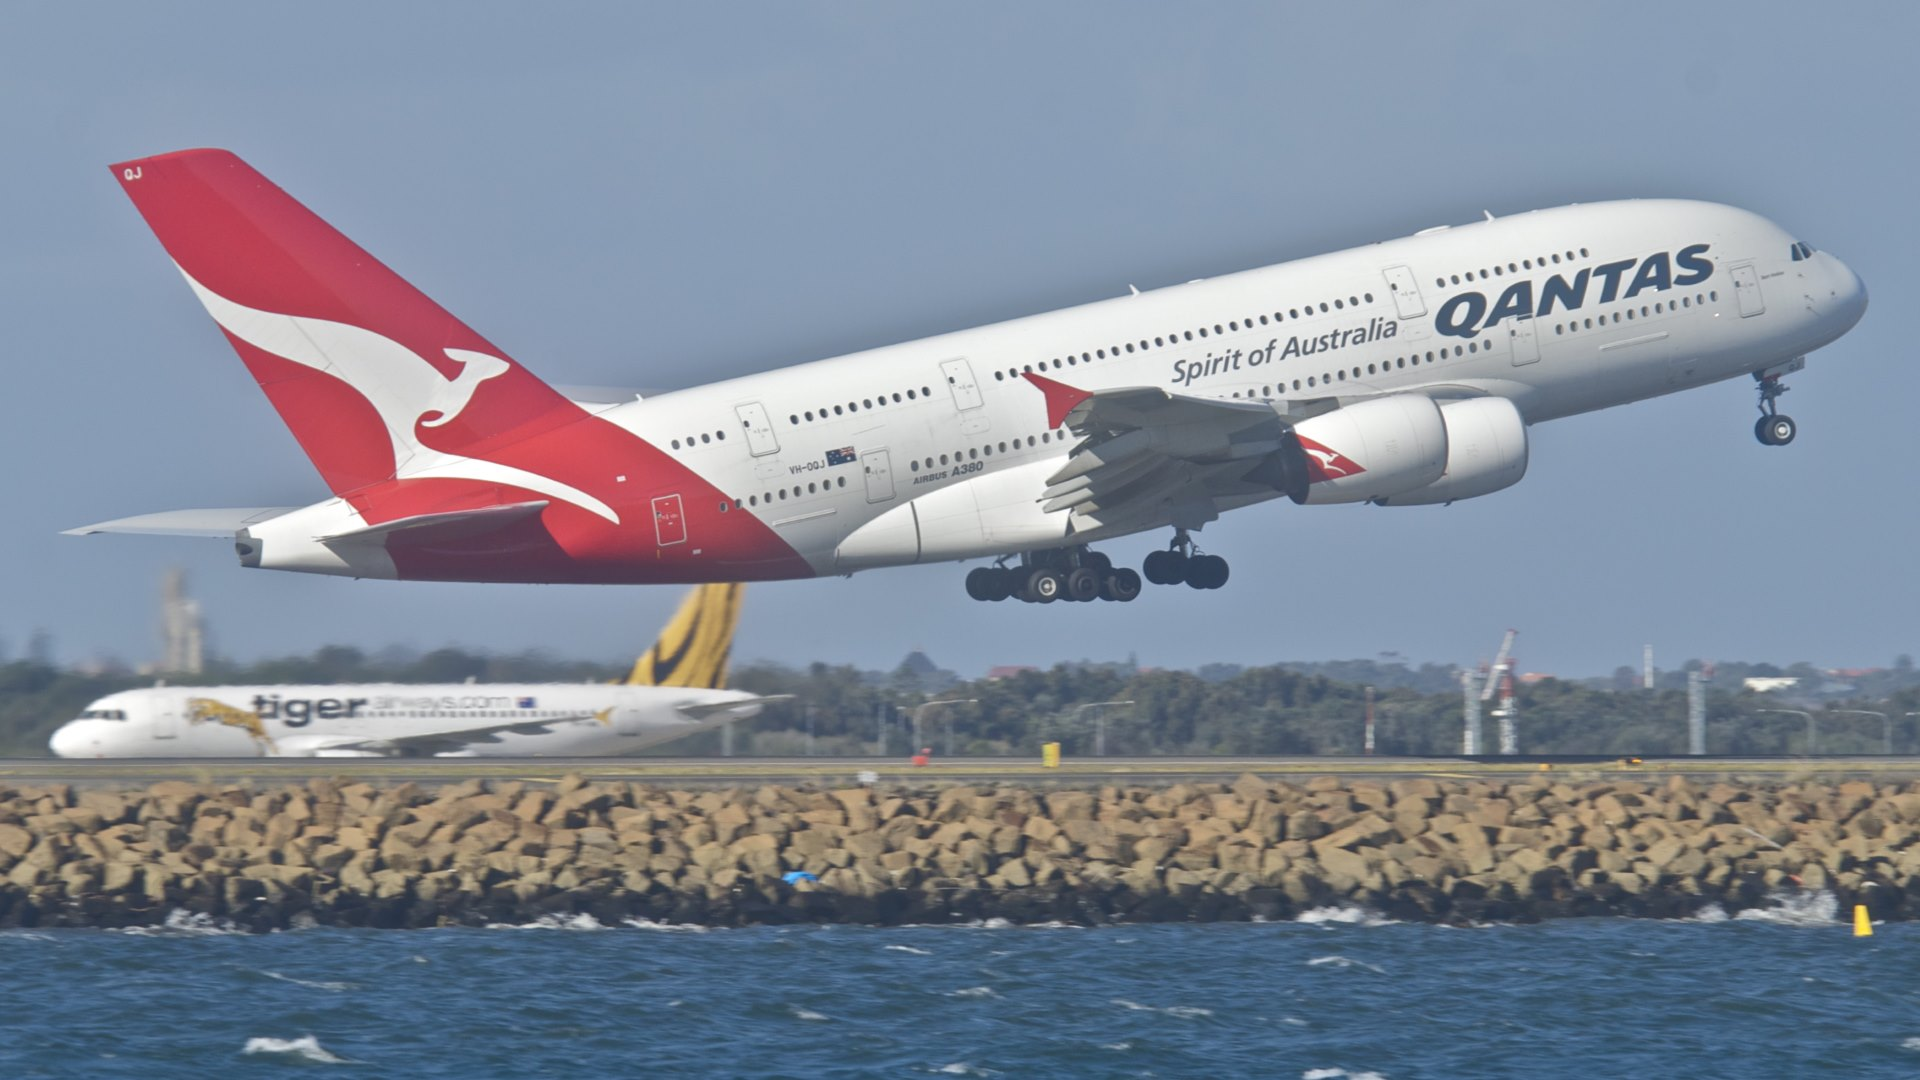 Qantas Airbus A380 842 Wallpaper 183 HD Wallpapers 1920x1080